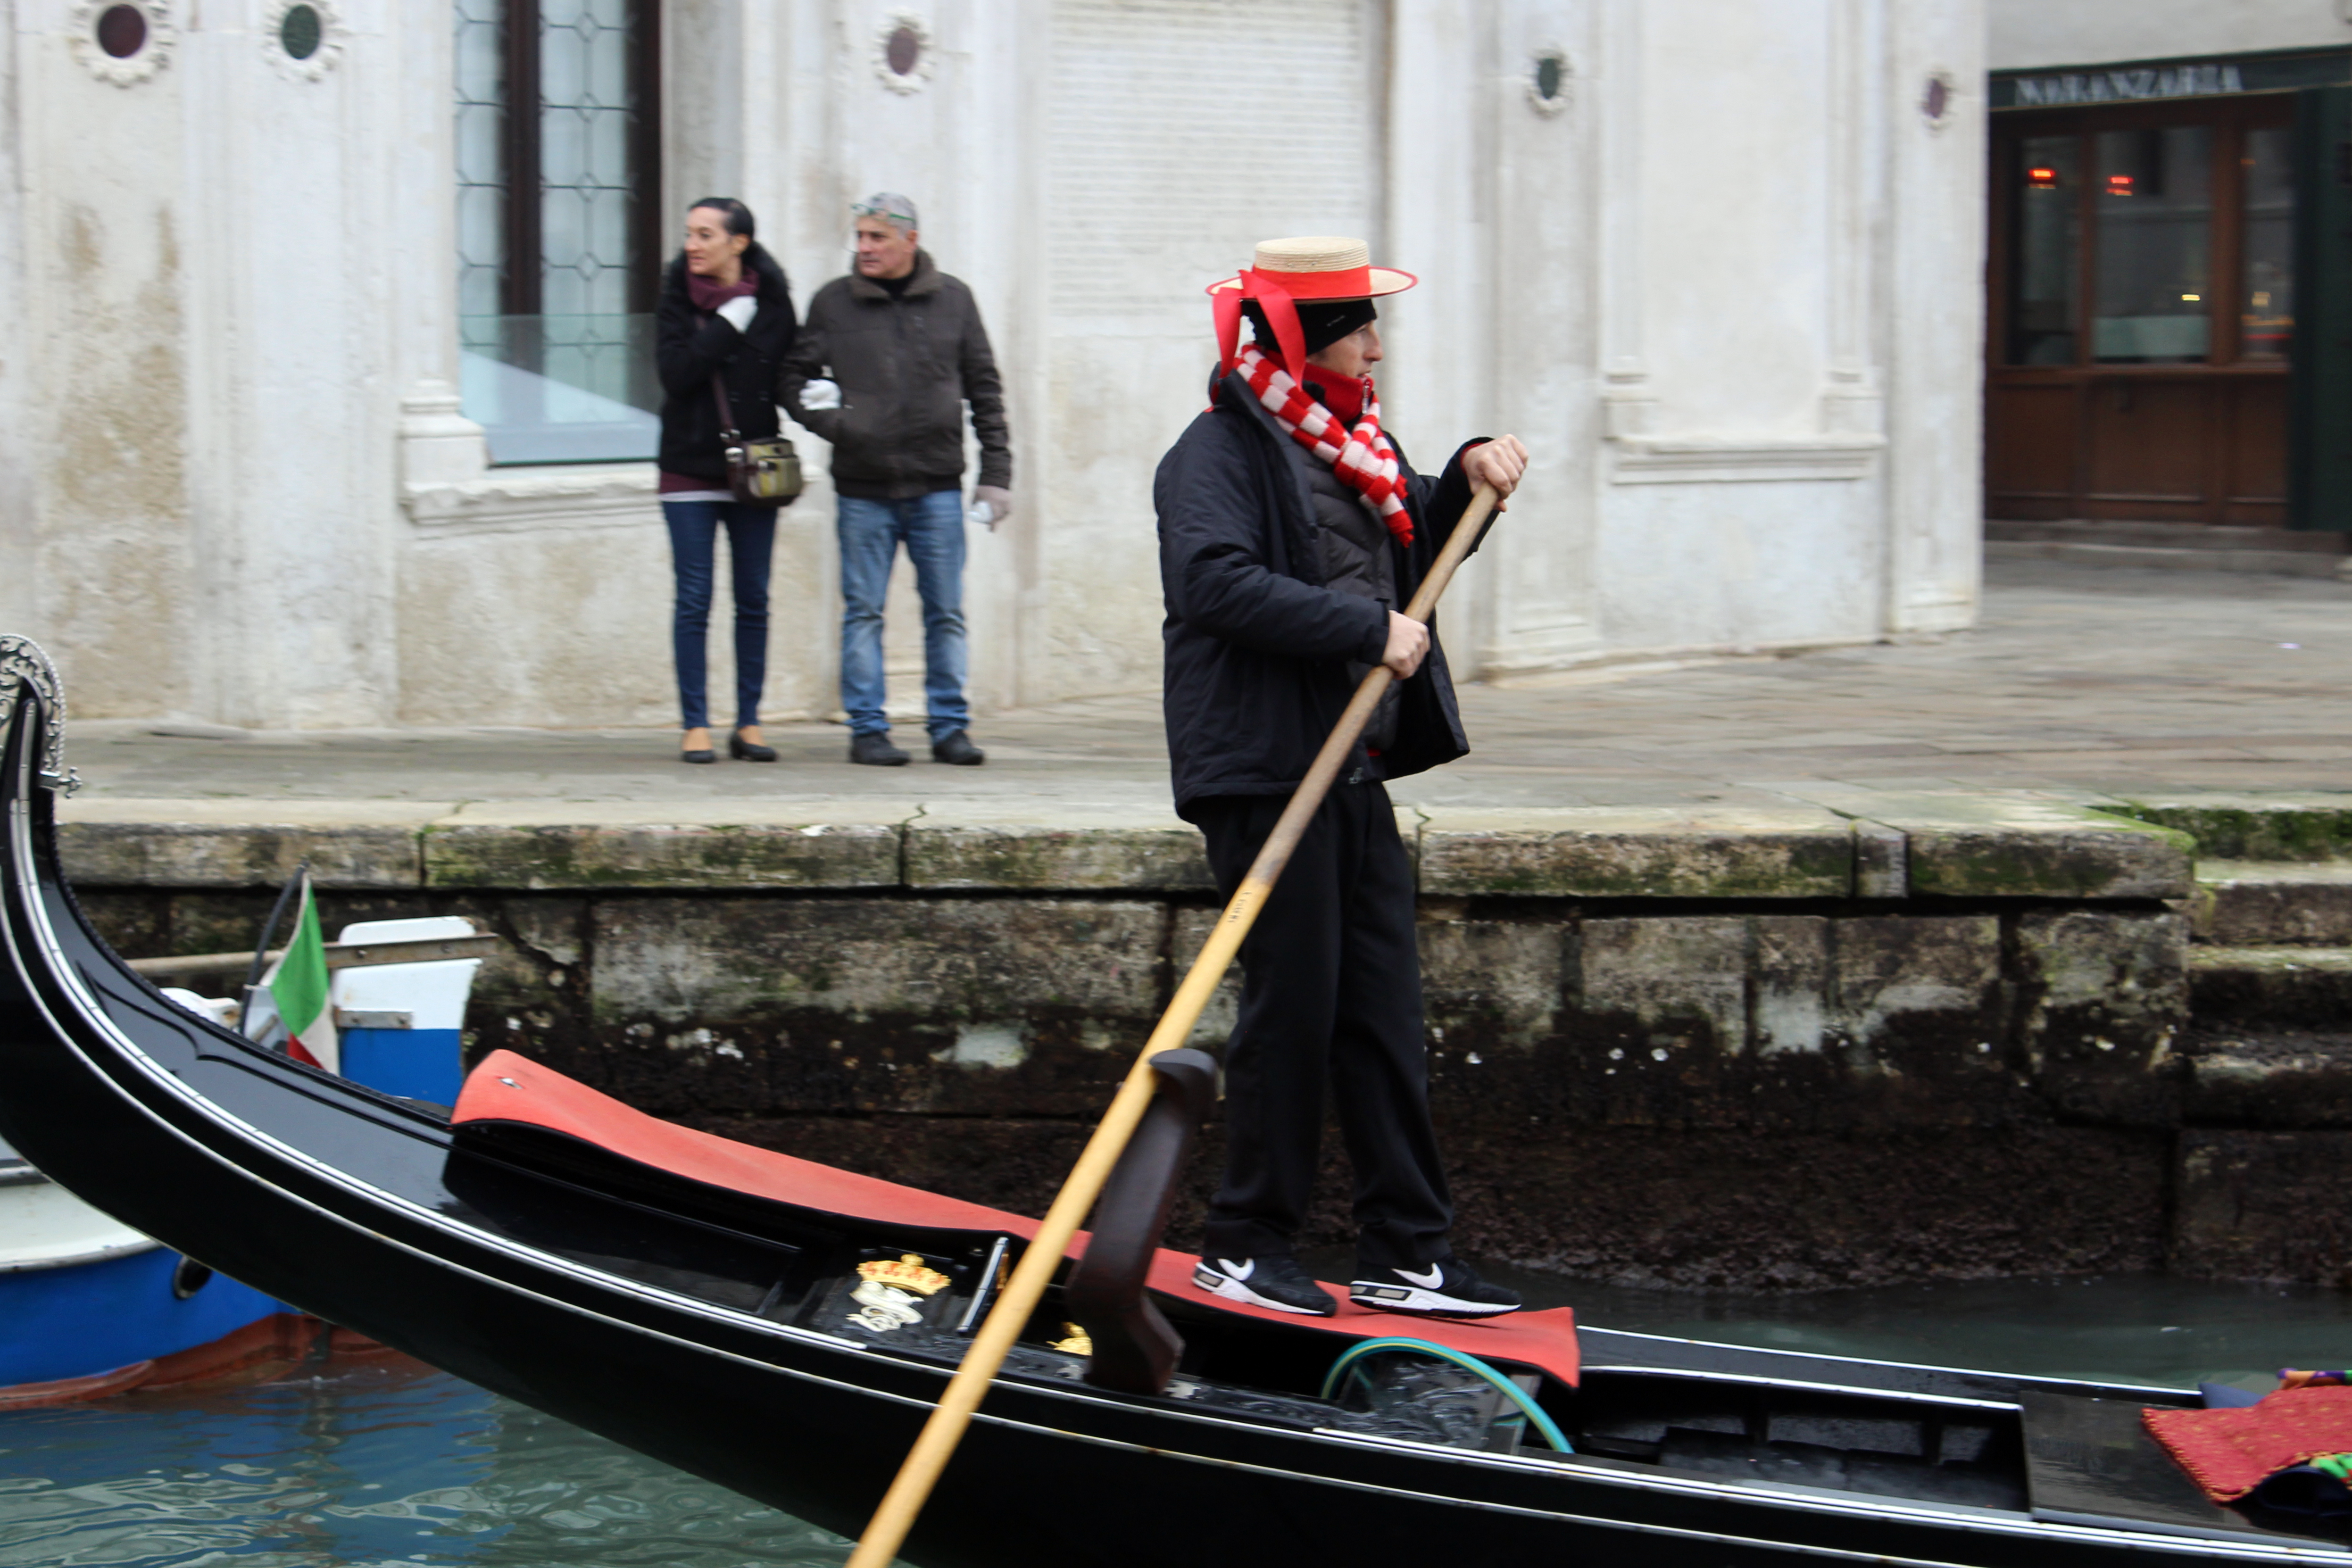 Man on Gondola on the Grand Canal in Venice Italy